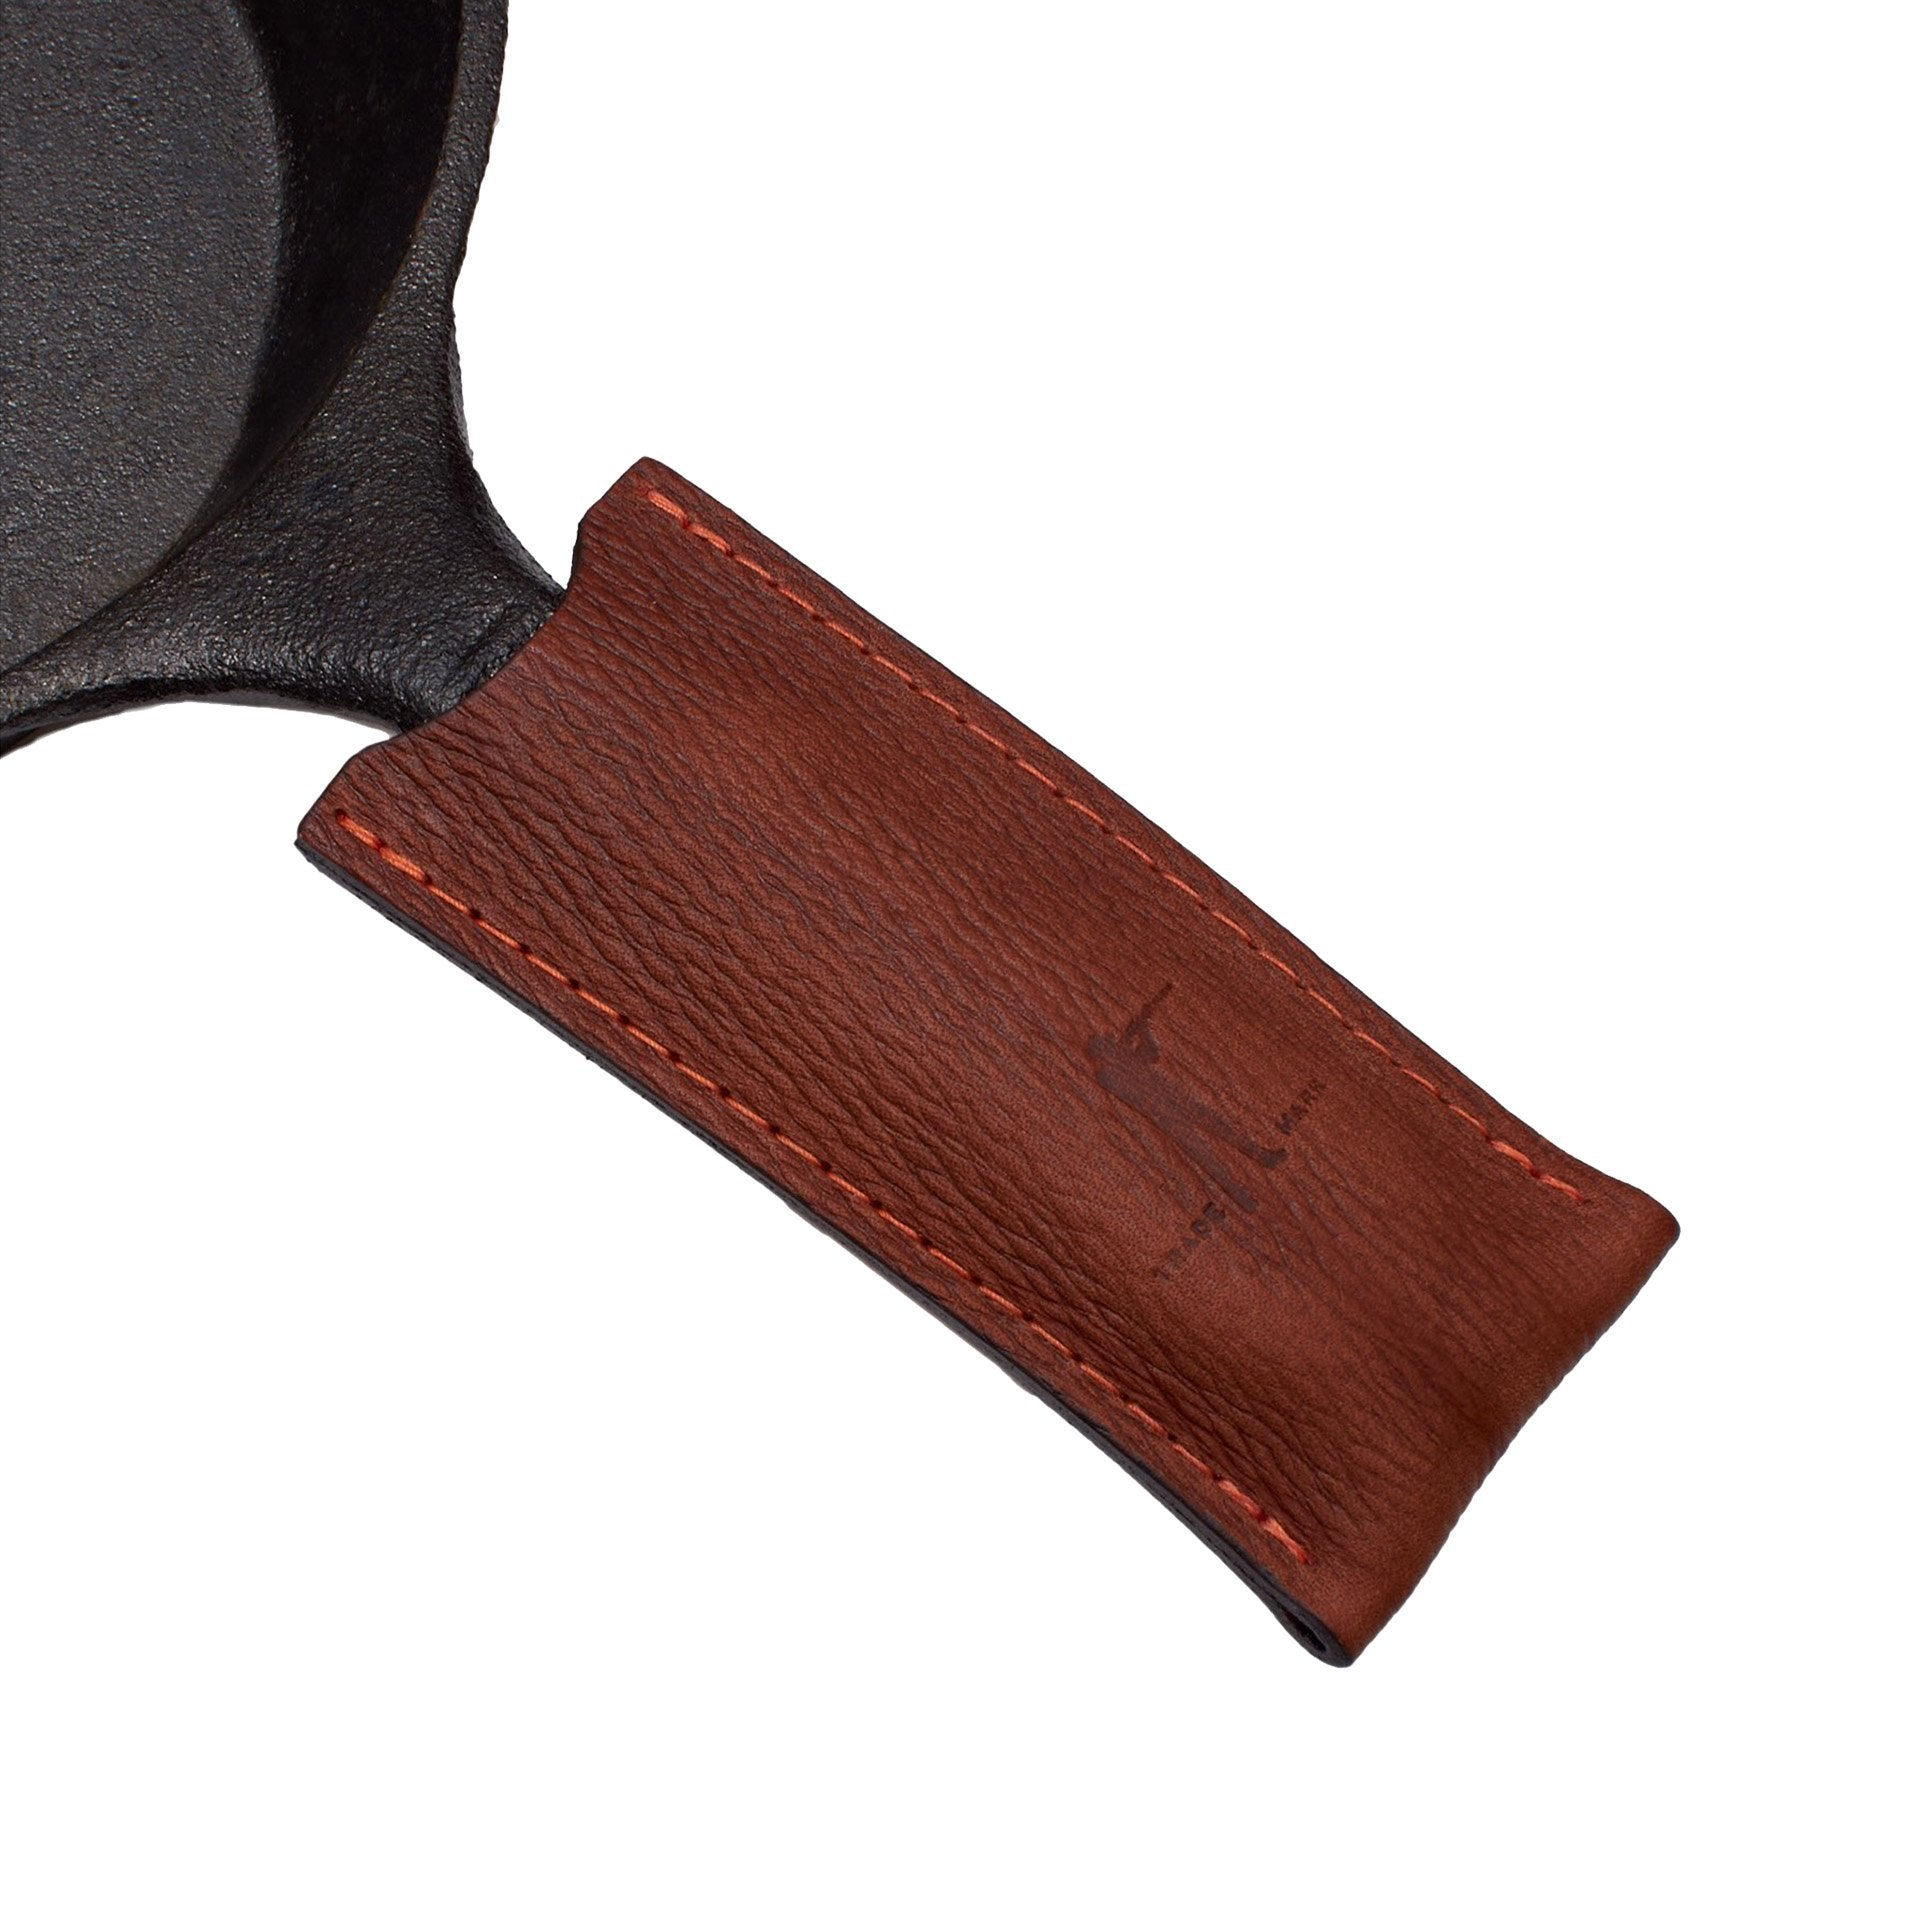 Pot Holder - Signature Leather